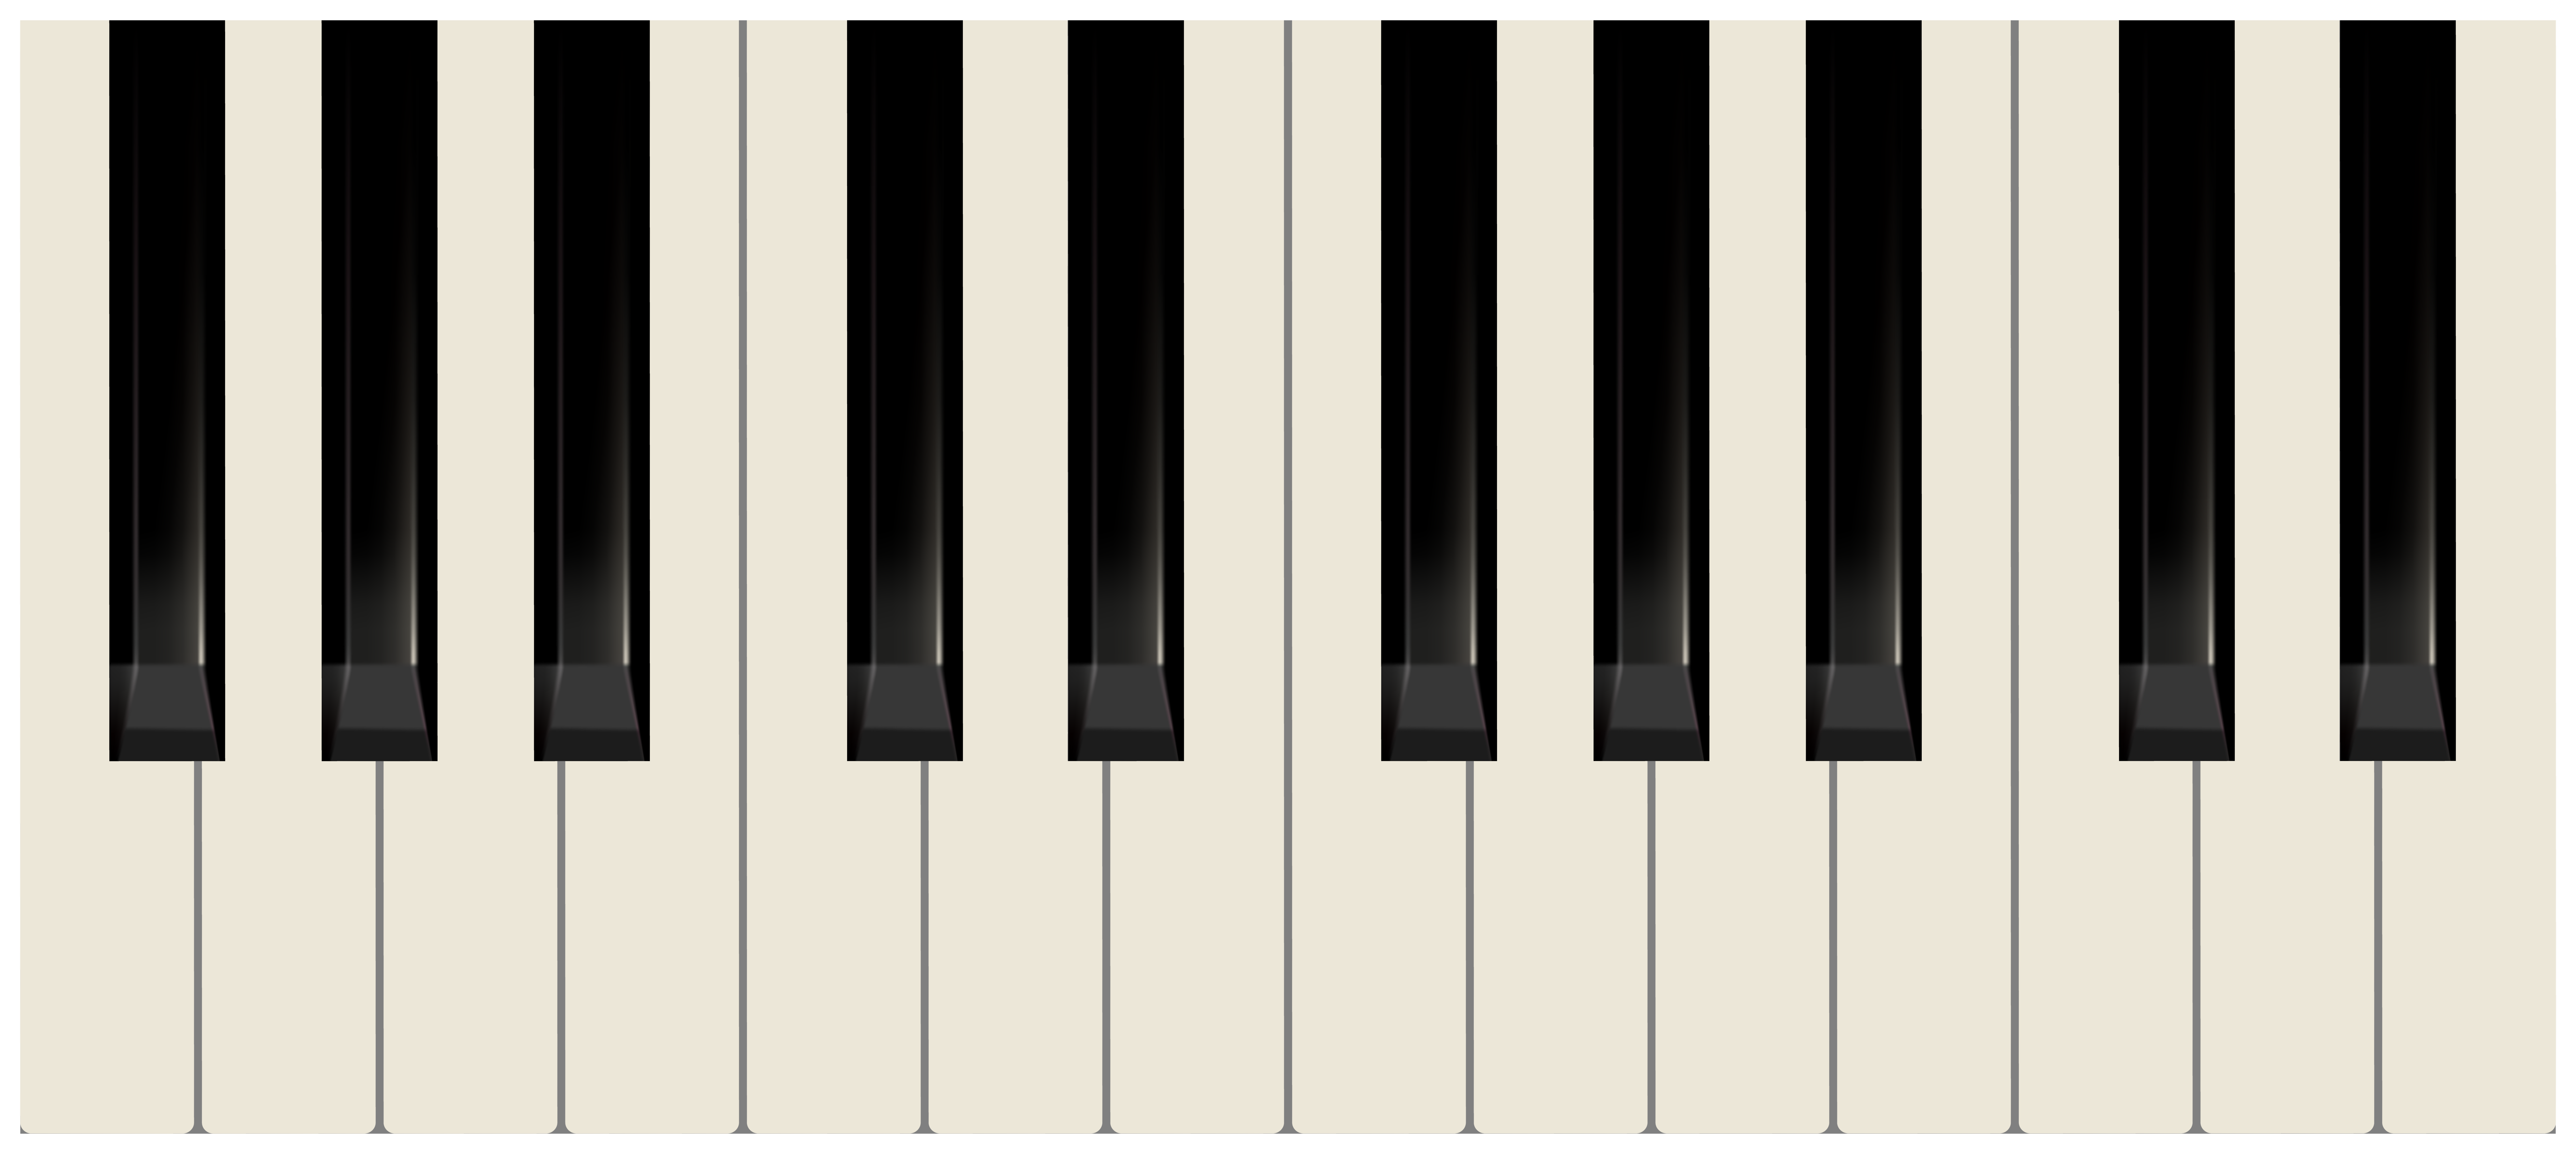 Piano Keys Transparent Image Gallery Yopriceville High Quality Images And Transparent Png Free Clipart Piano Keys Piano Free Clip Art